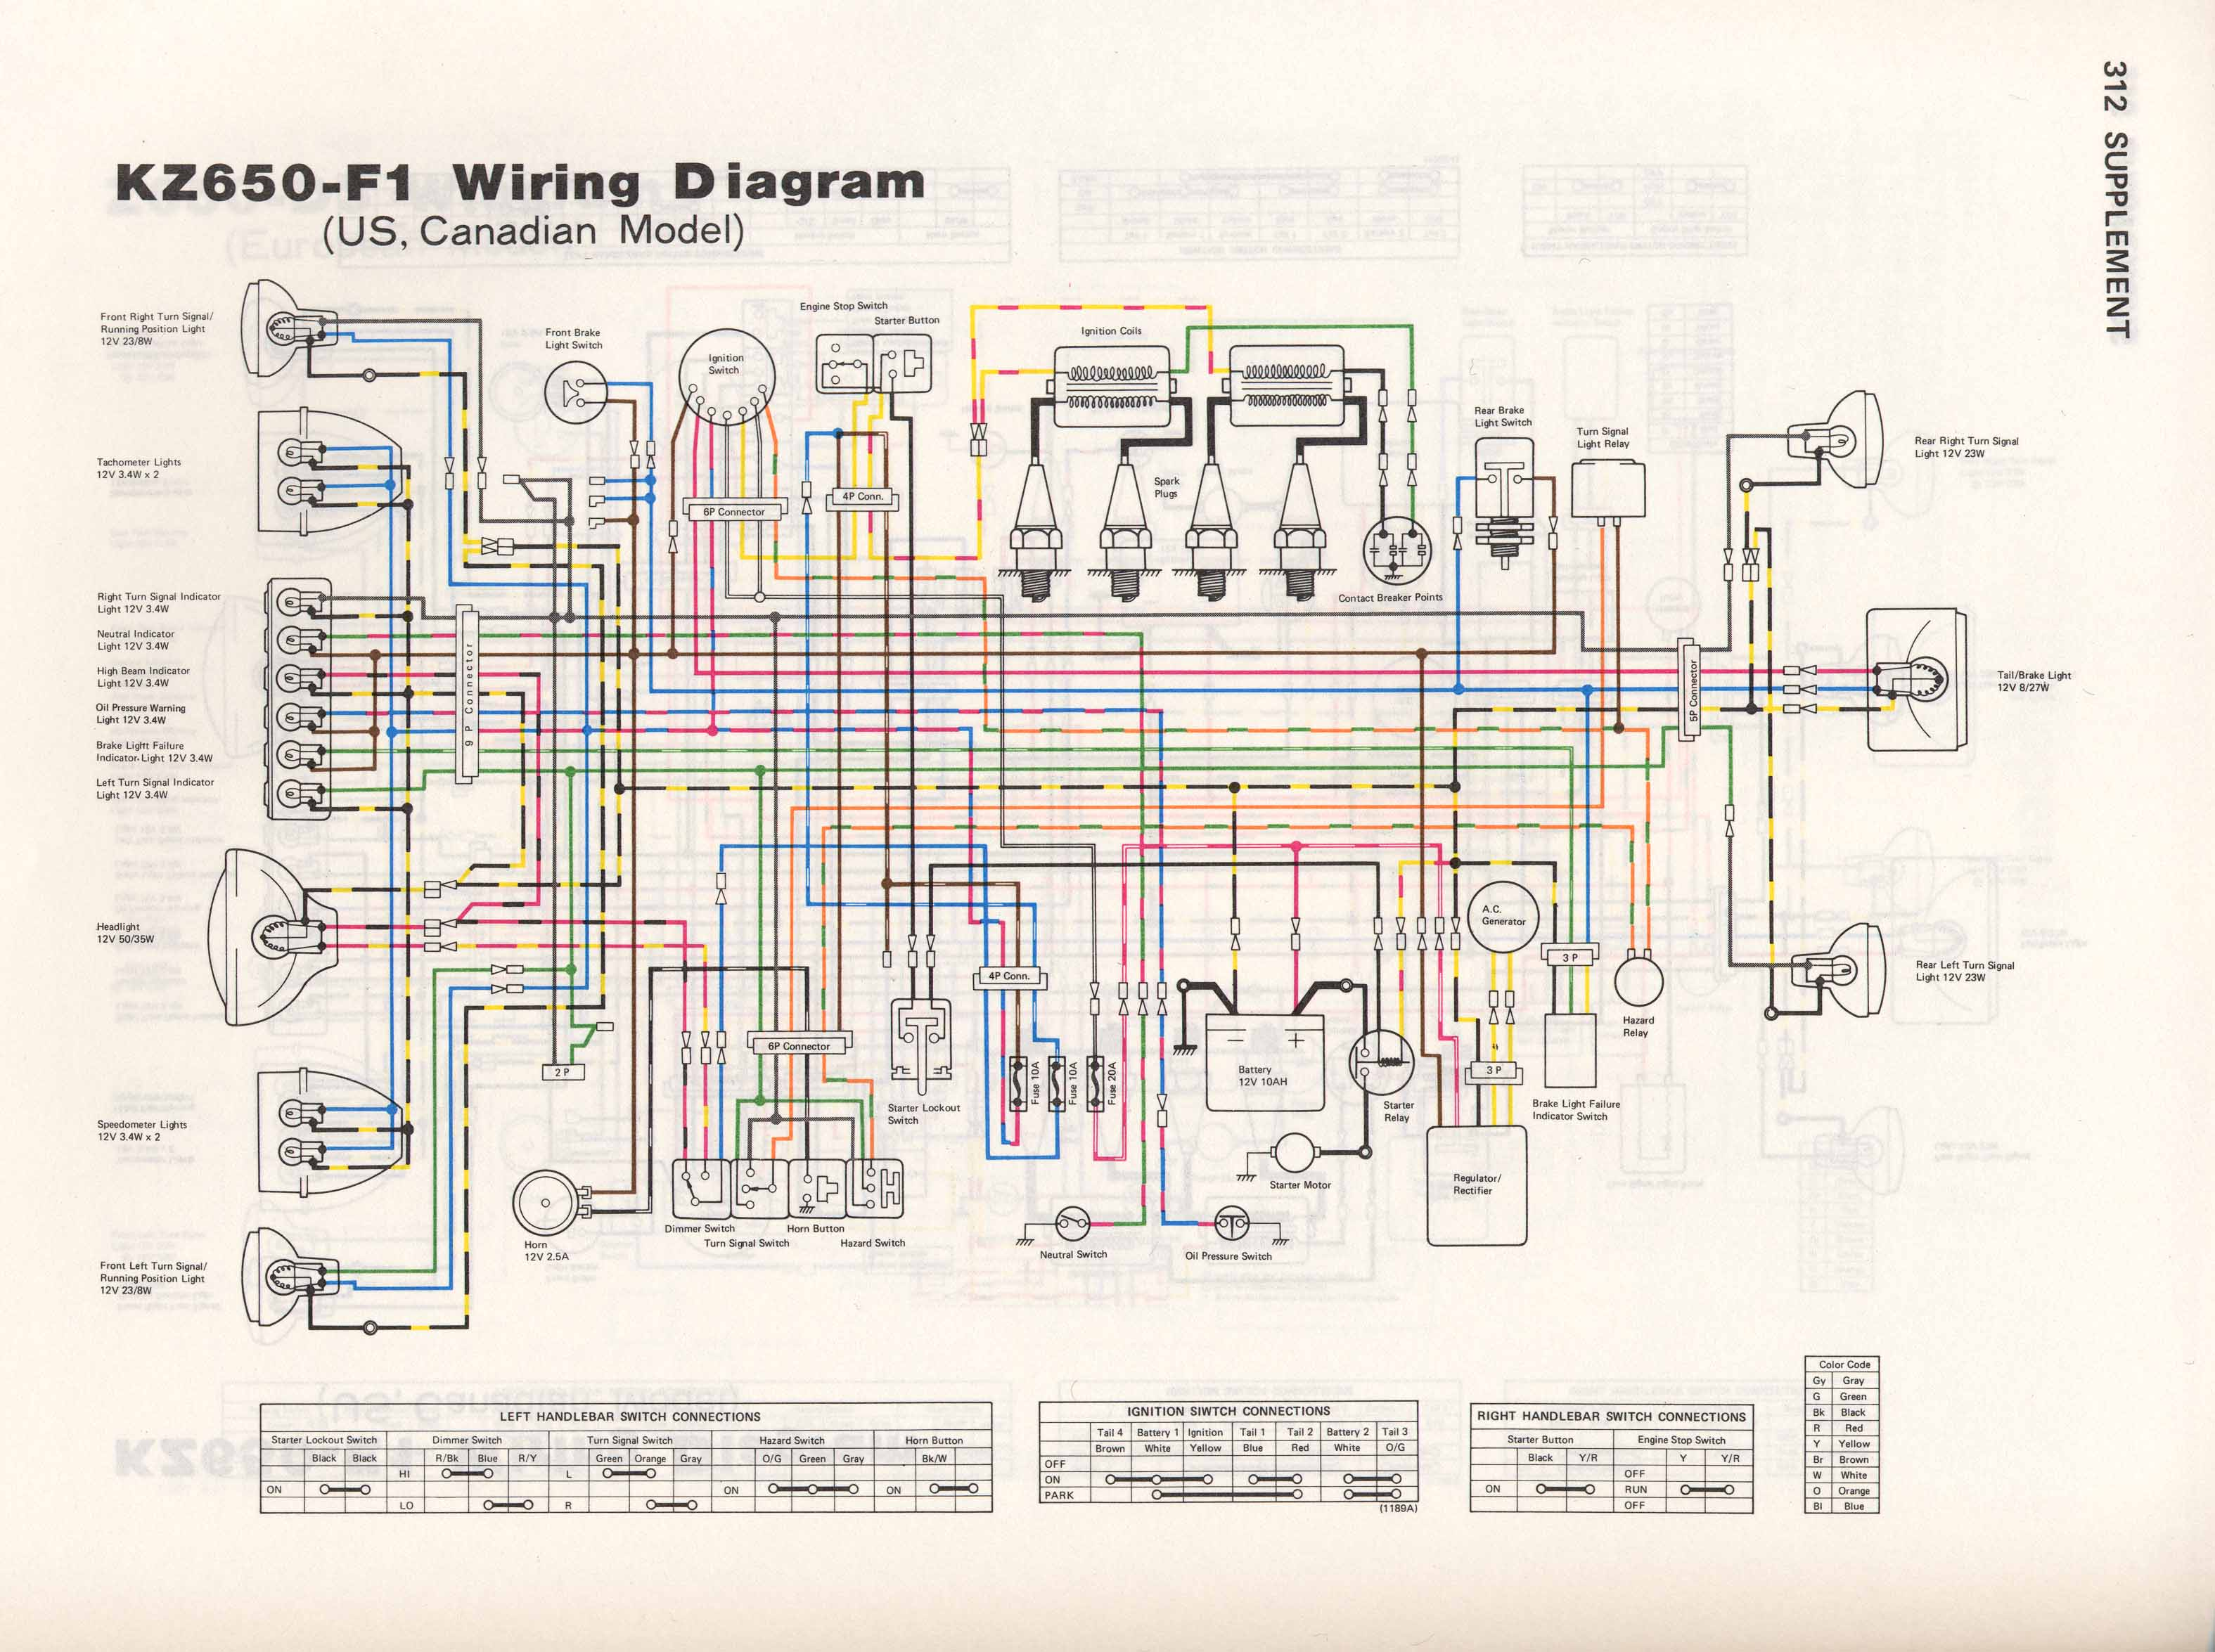 Kz650info Wiring Diagrams I Need A Diagram Kz650 F1